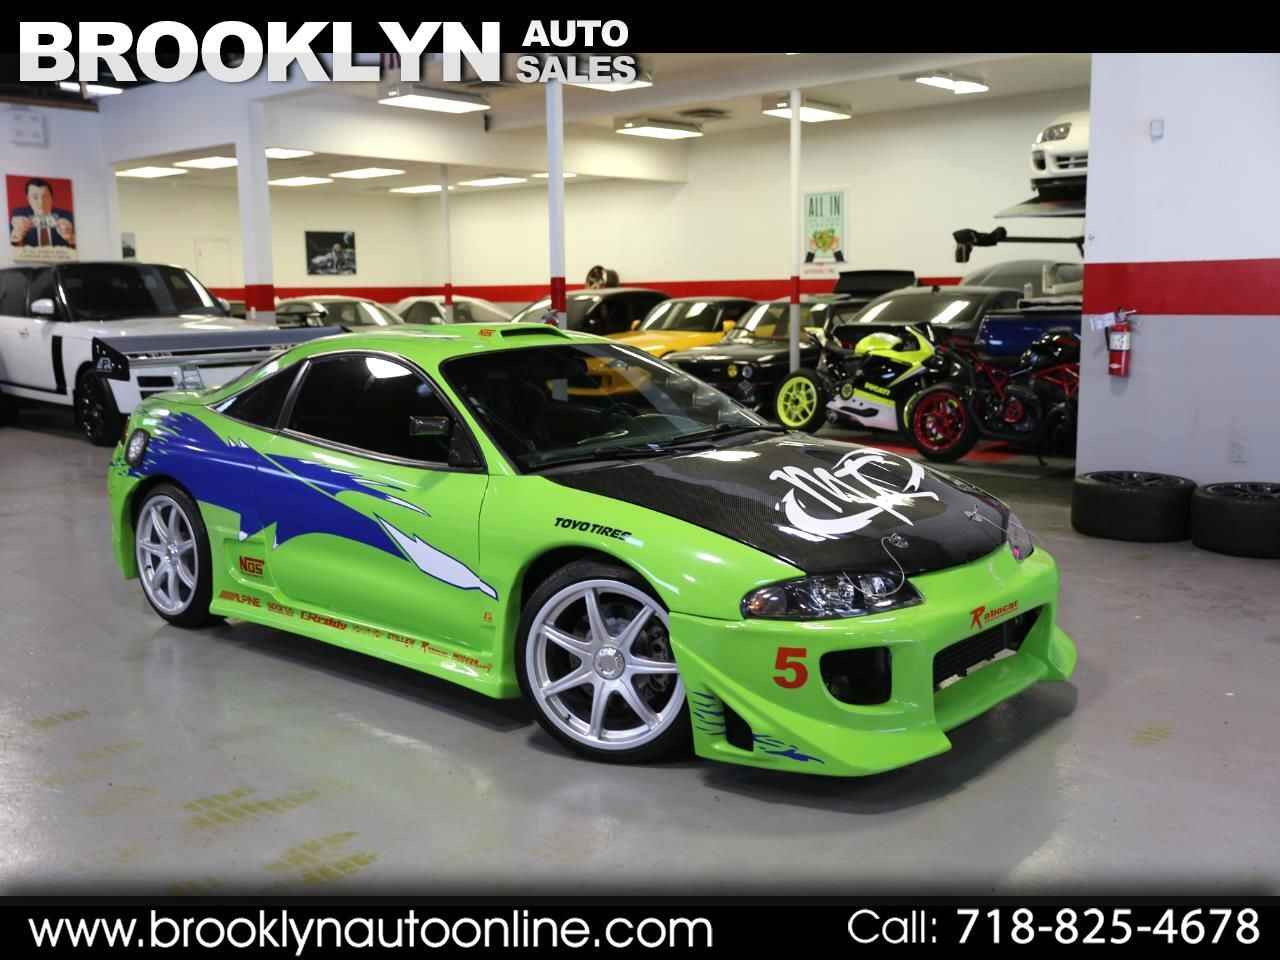 1999 Mitsubishi Eclipse Rs Fast And Furious Mitsubishi Eclipse Mitsubishi Eclipse For Sale Dsm Cars